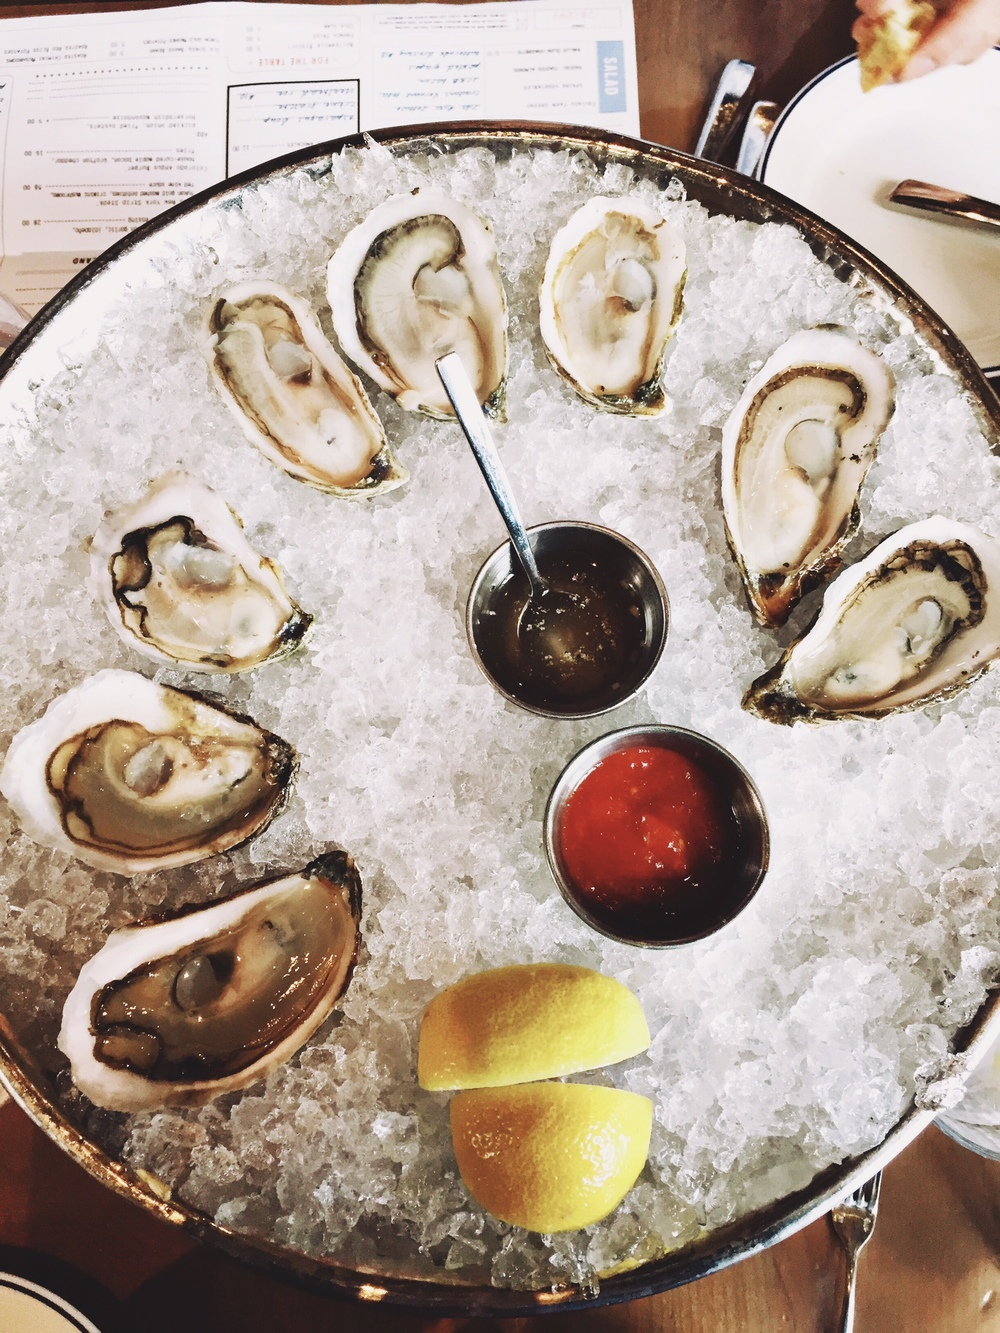 Oysters at Island Creek Oyster Bar - Boston